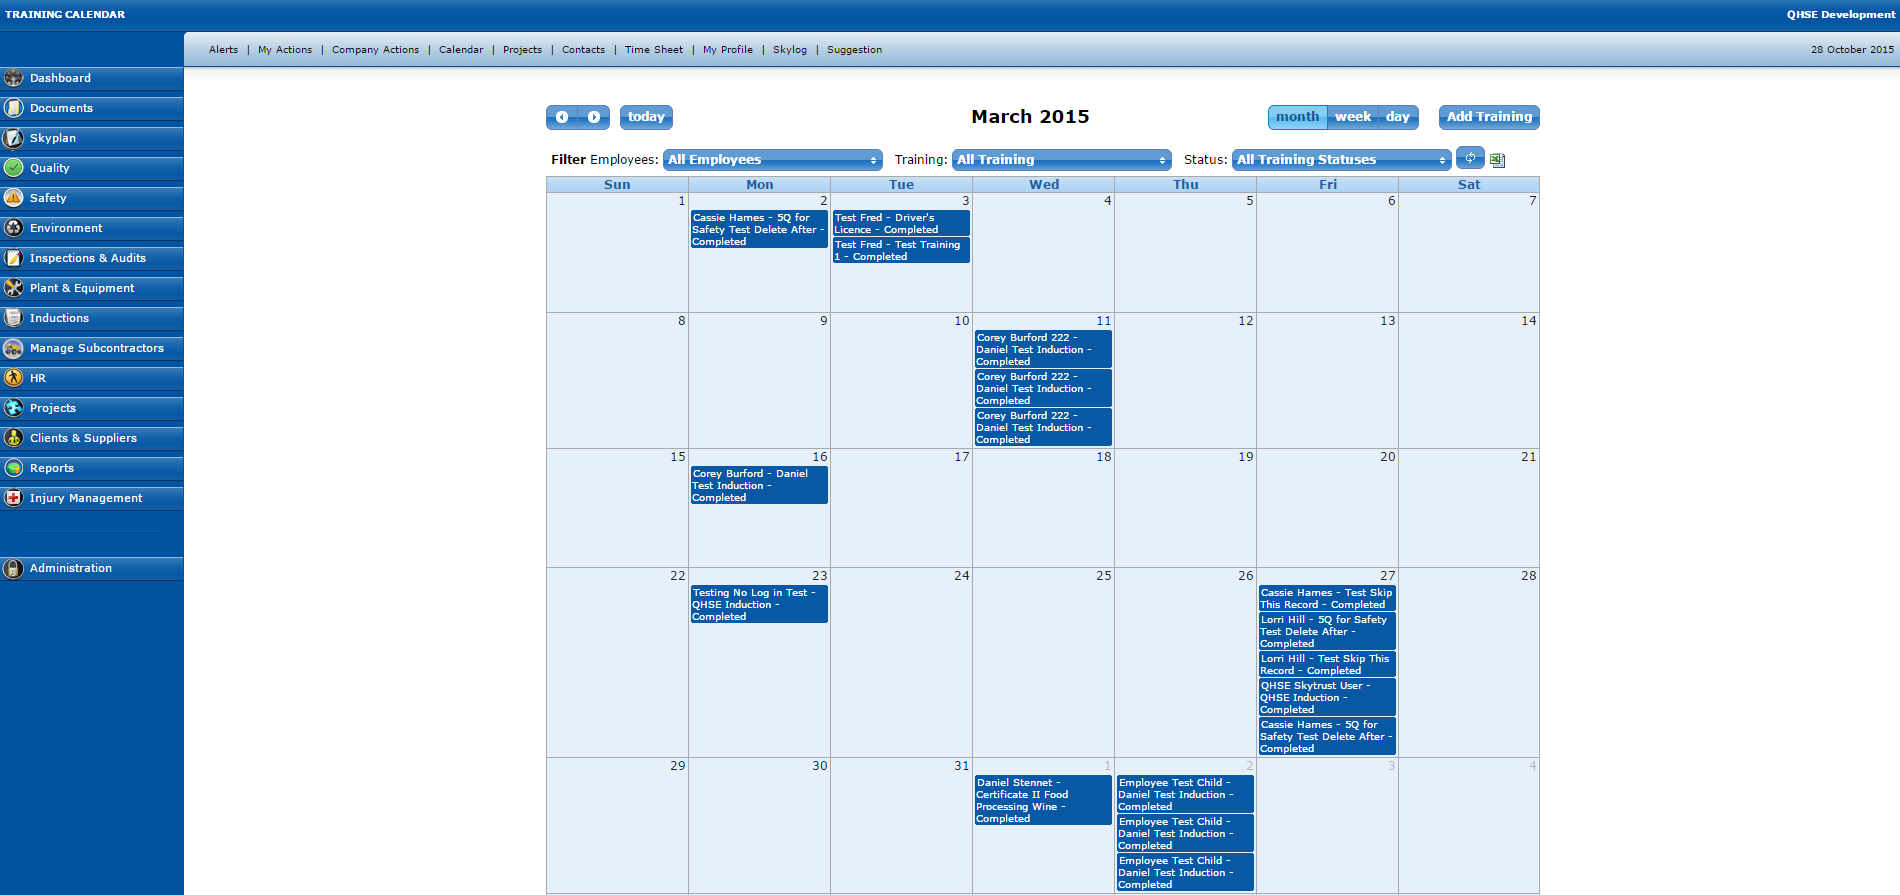 Training Calender and Training Scheduler